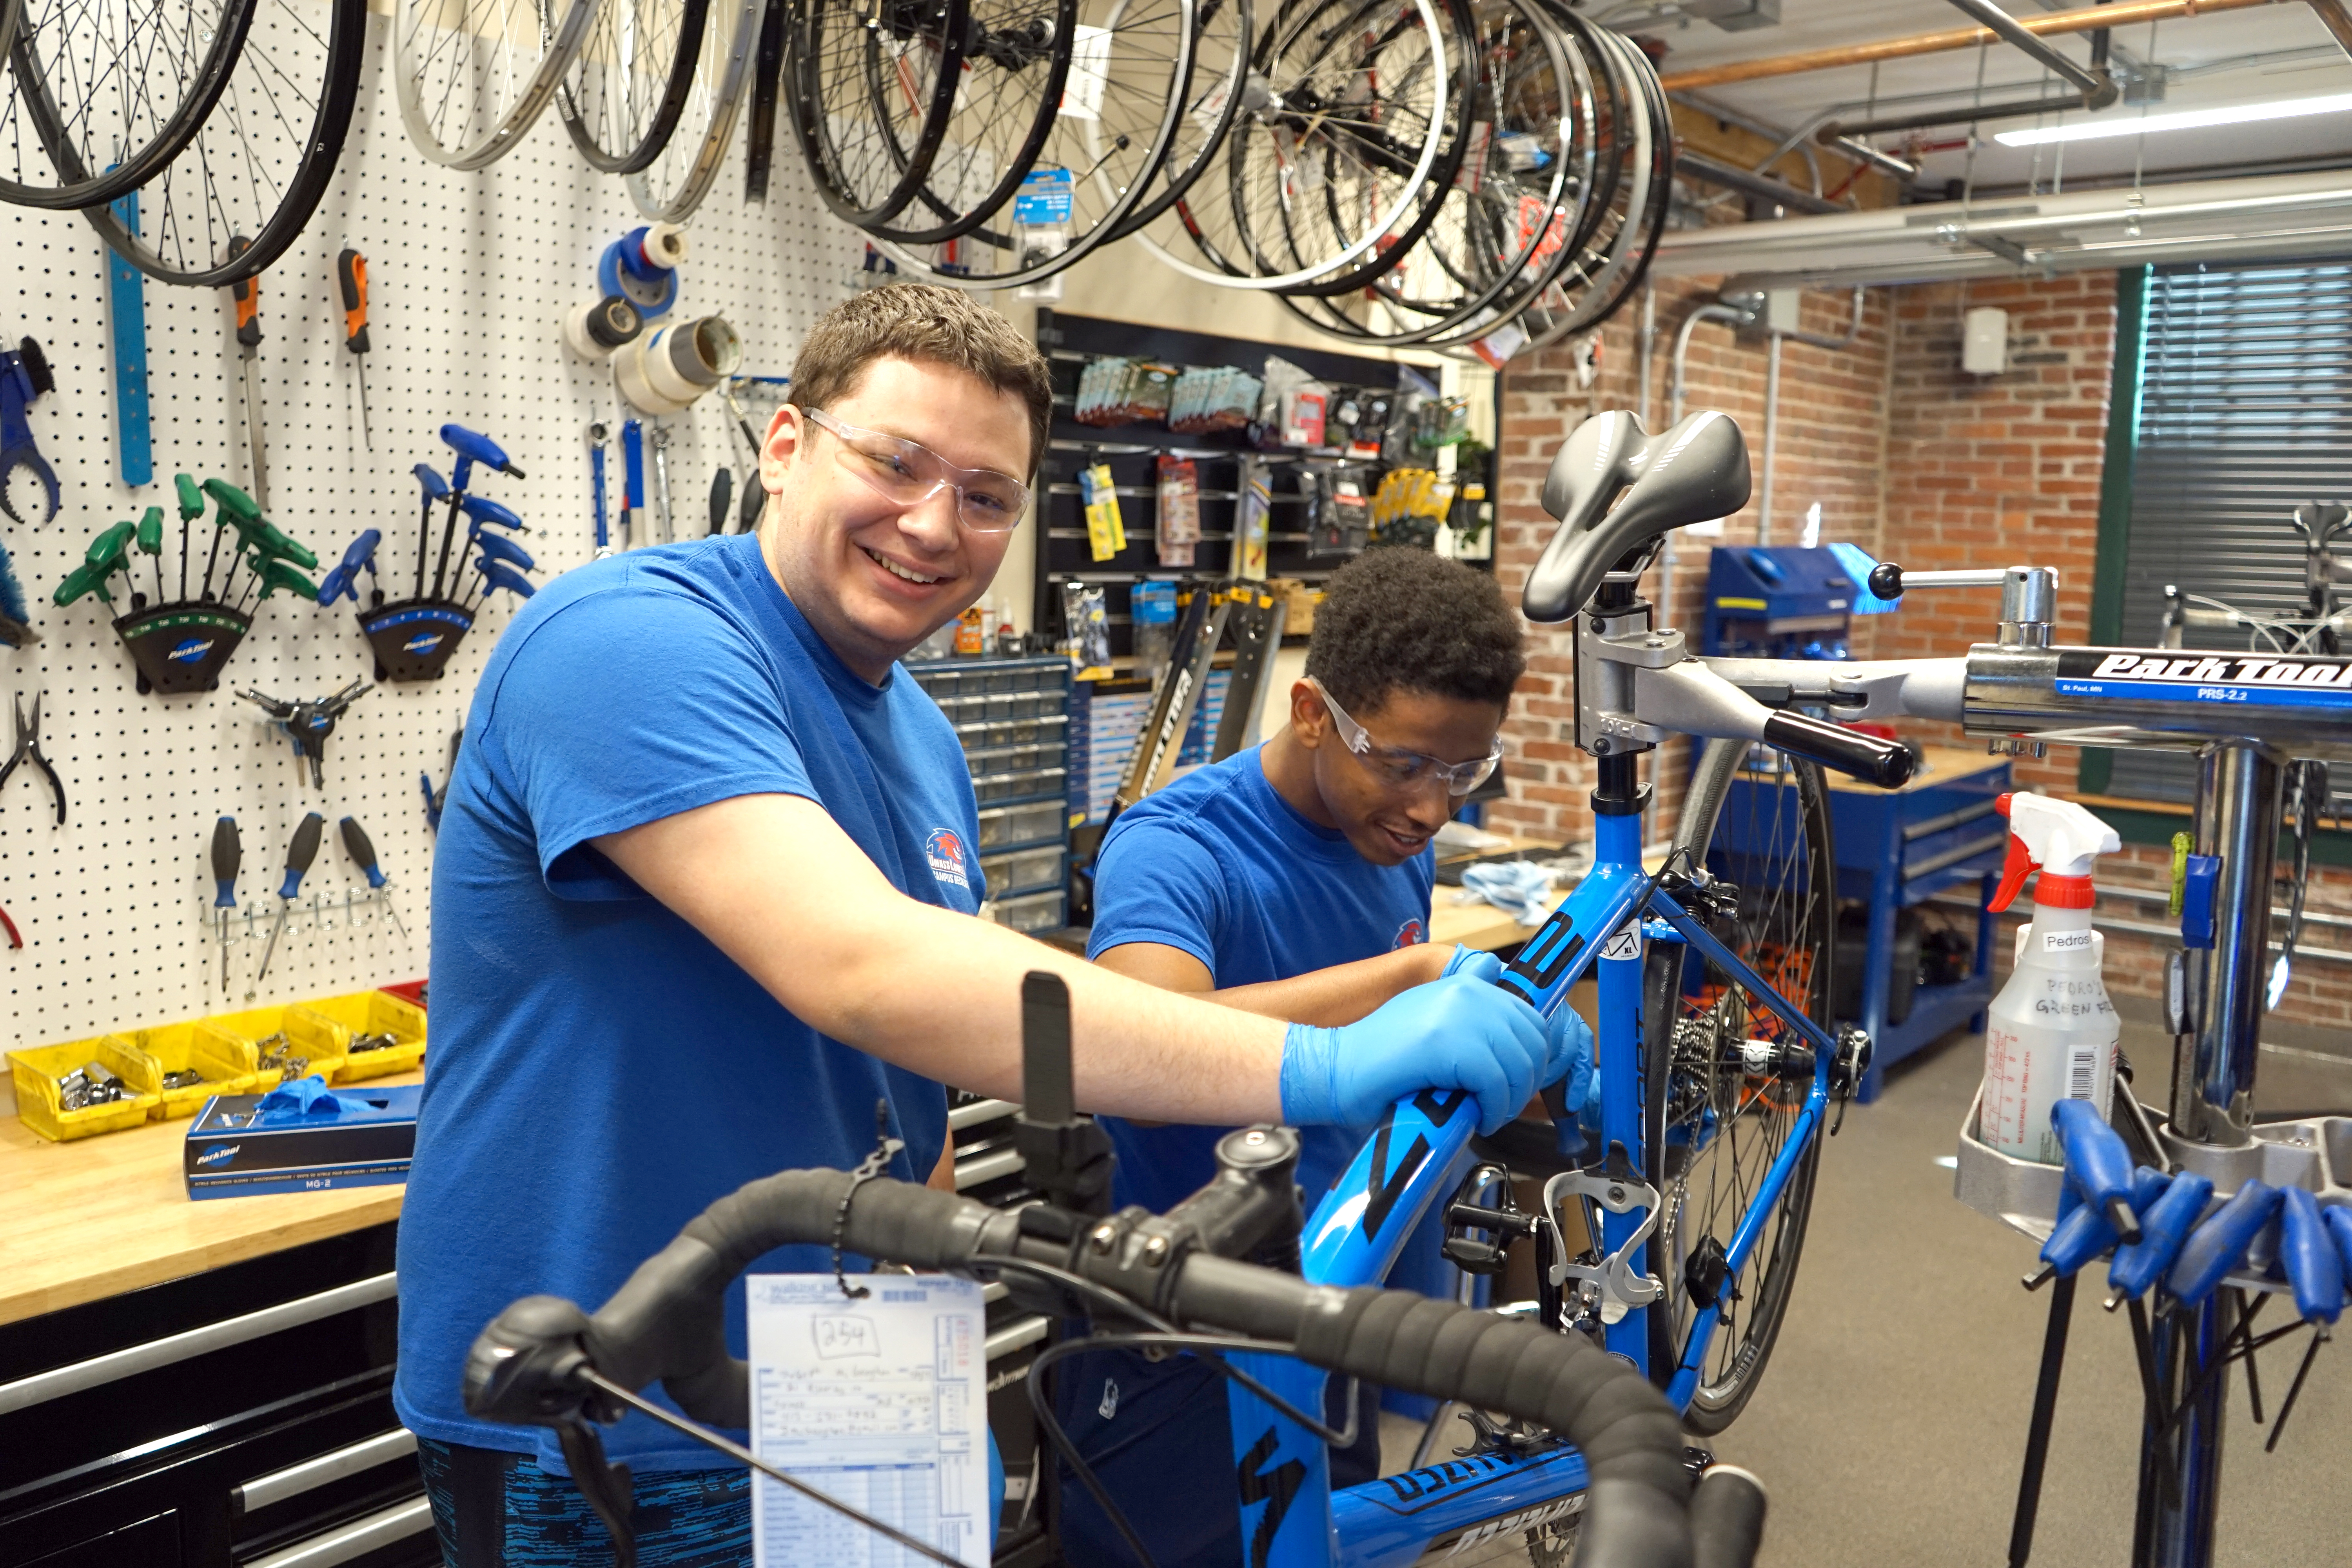 Two smiling student staff members working on a bike